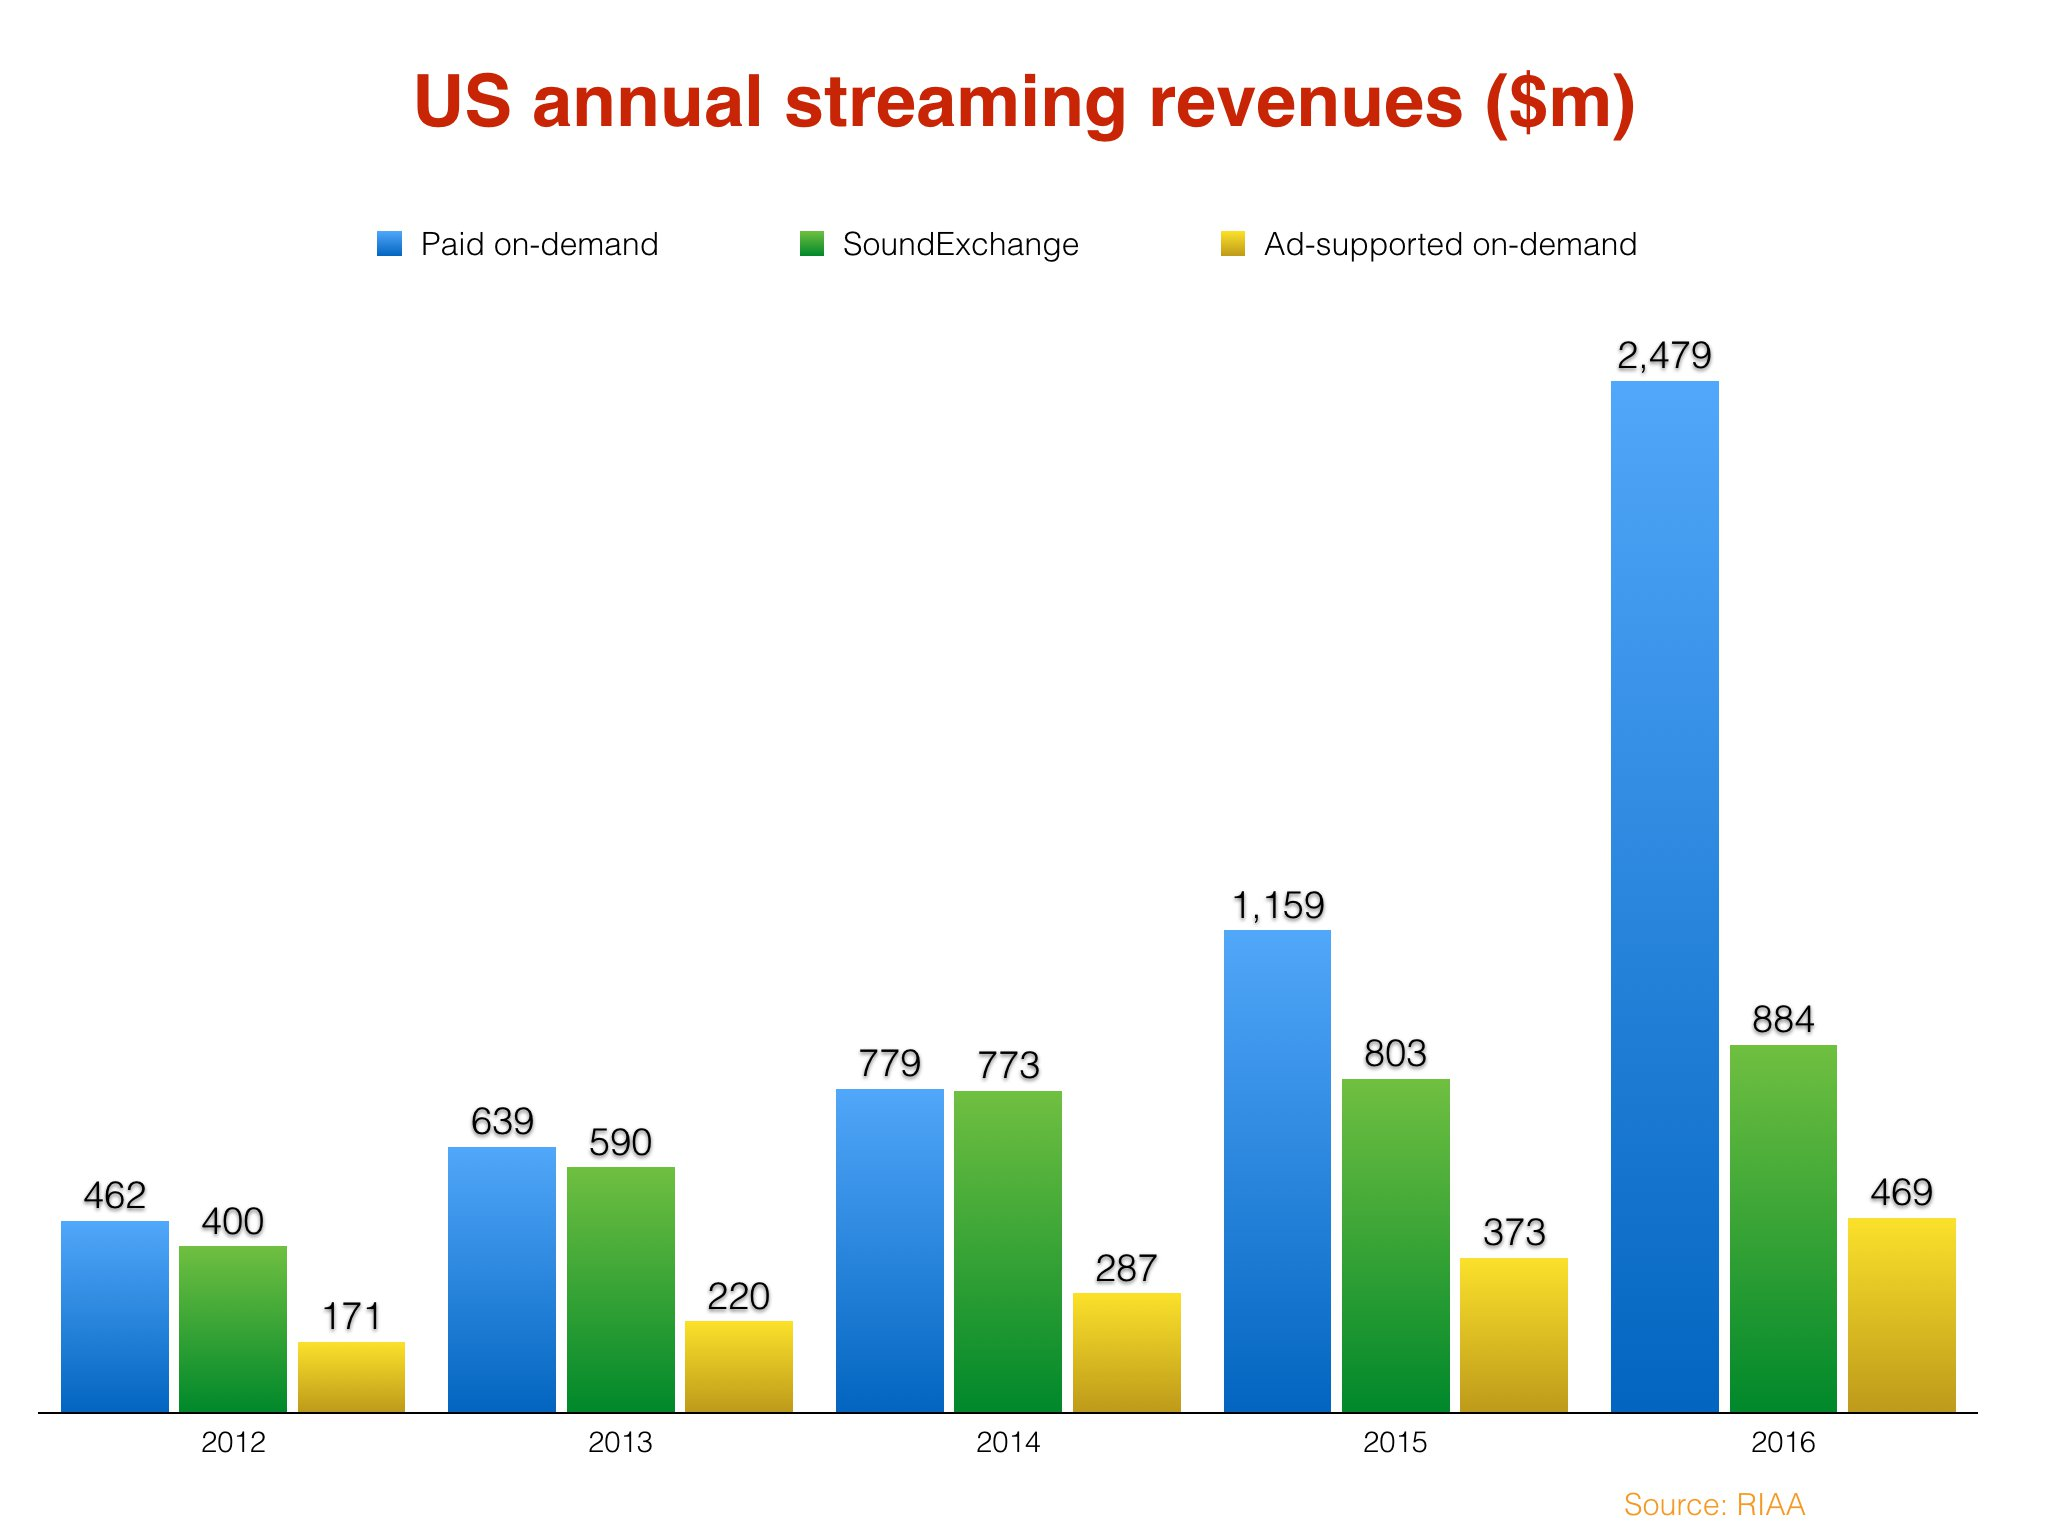 Streaming made a year ago the music industry's best since 2009